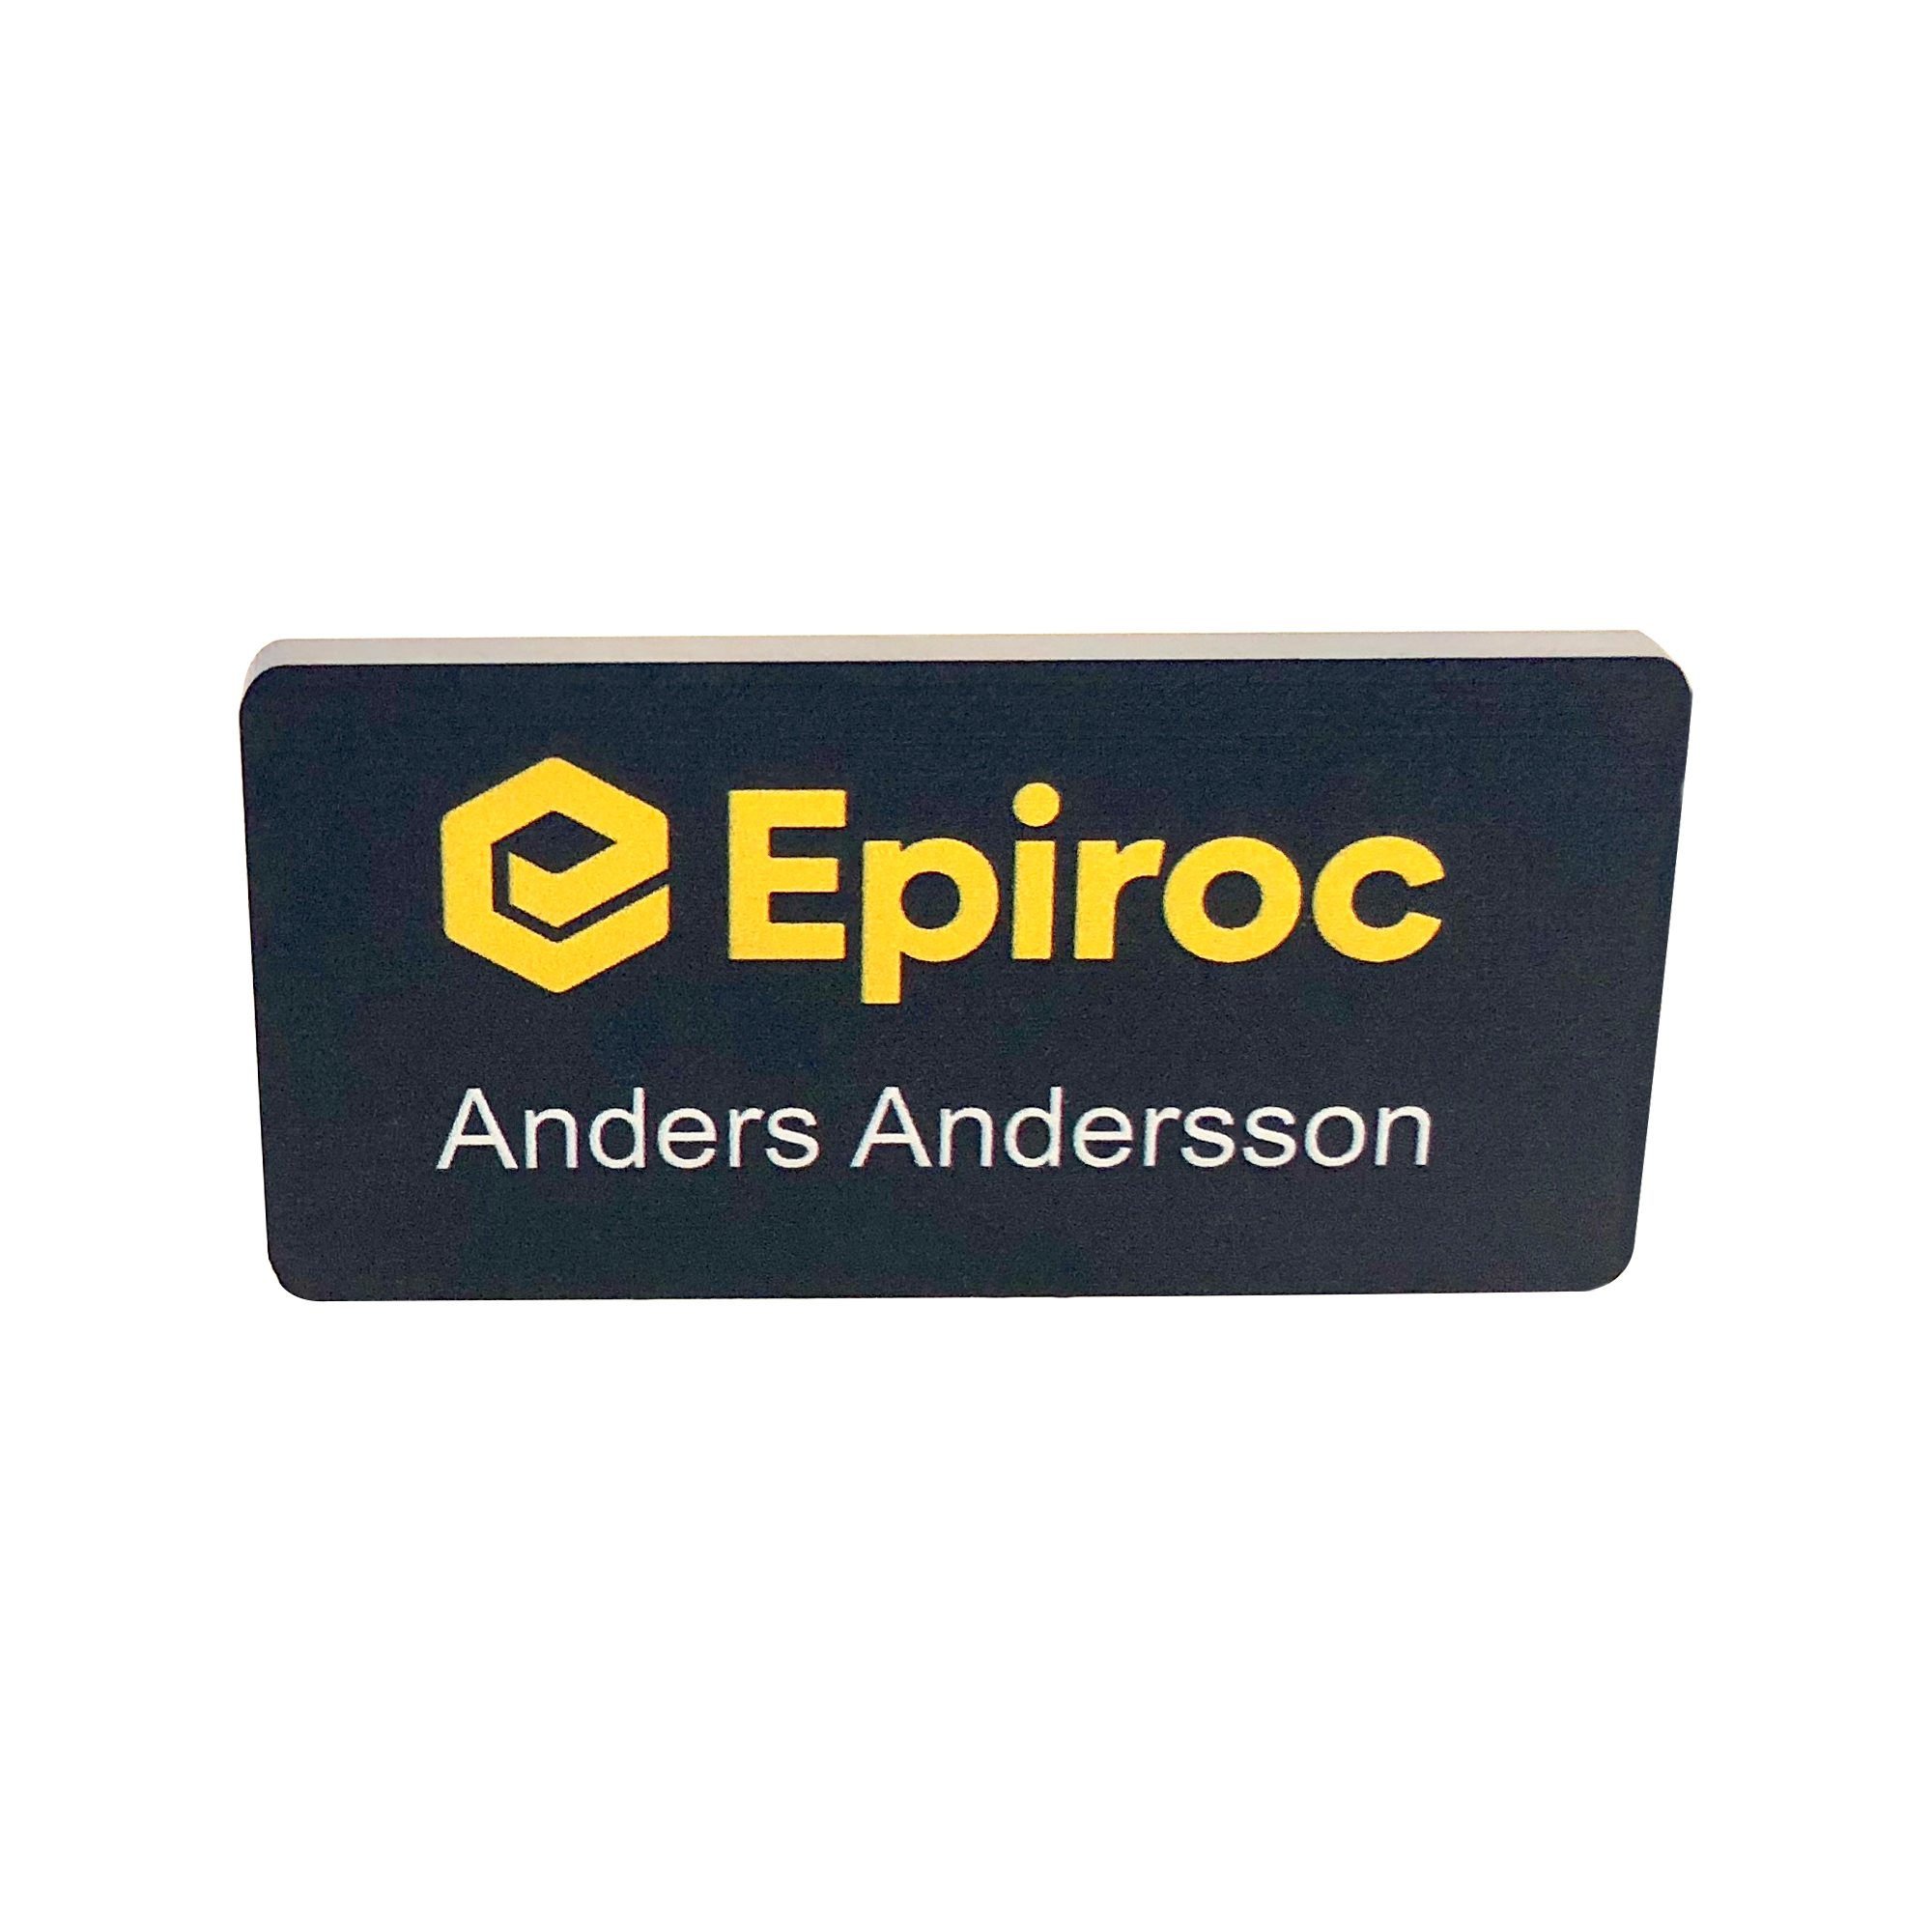 Acrylic name badge with Epiroc logo. Including a magnet for attaching the badge. Your own personal name will be printed upon request.